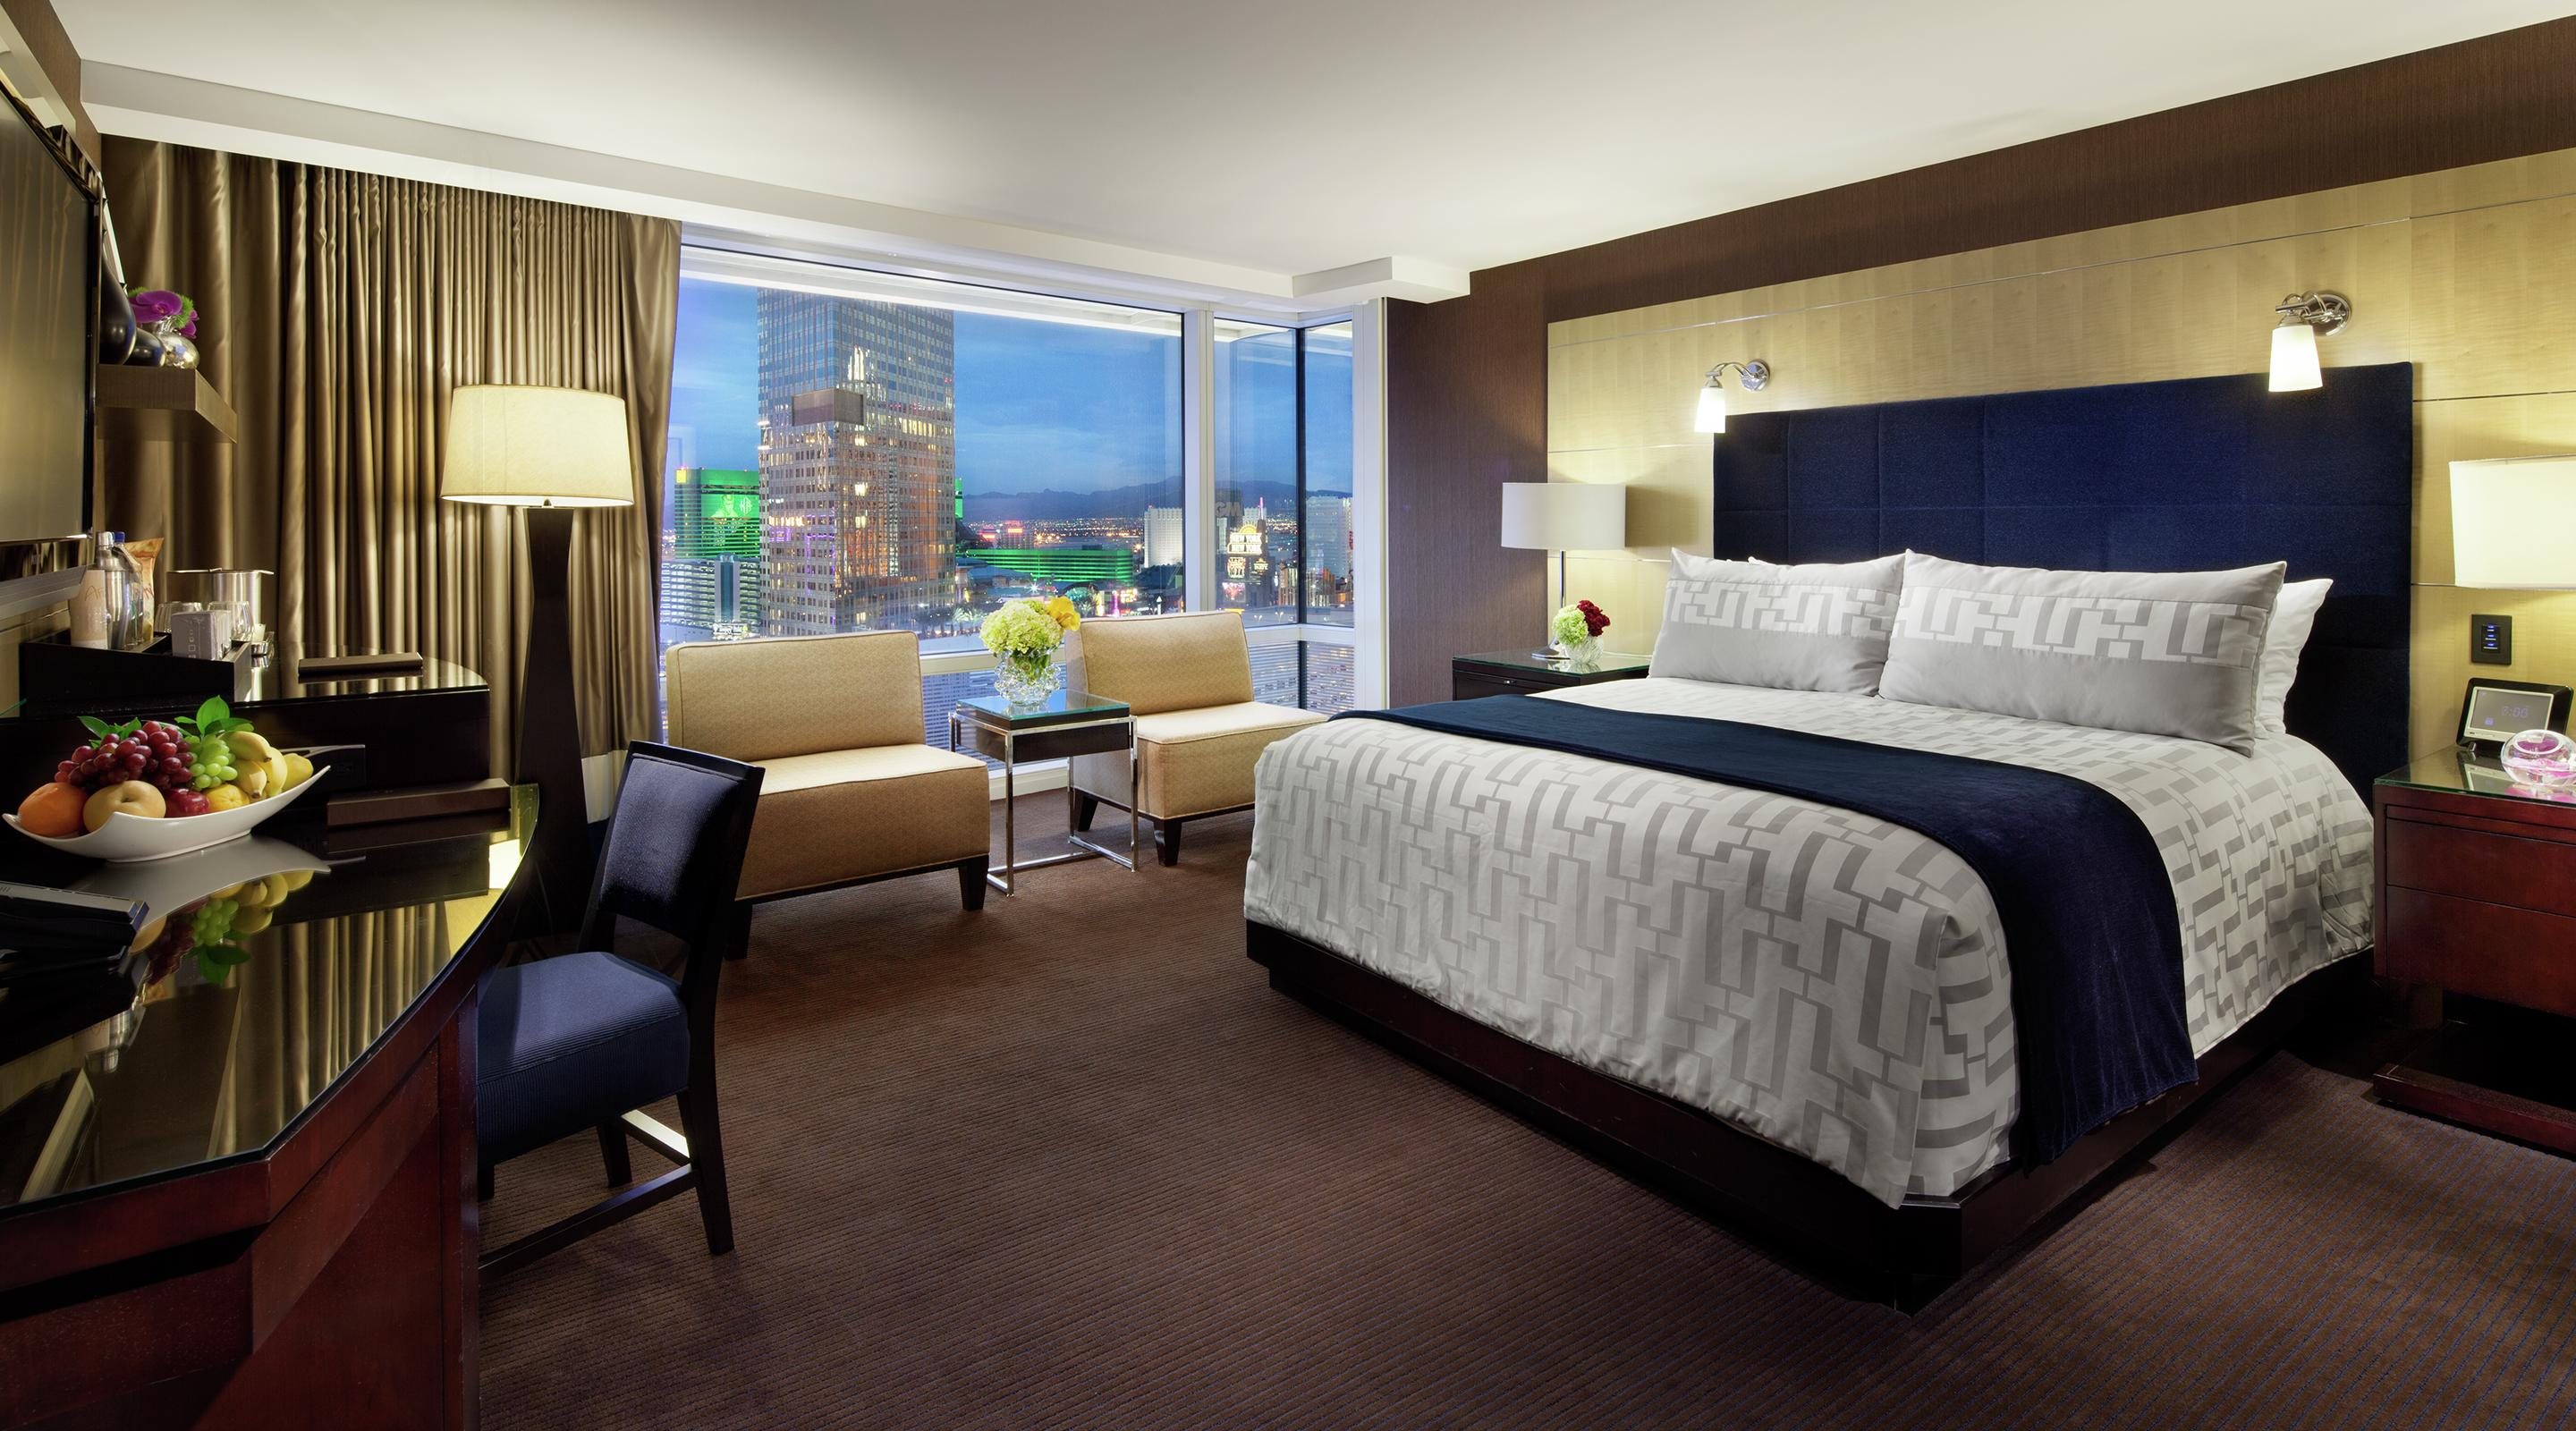 The rooms at ARIA have quickly become the new standard in Las Vegas hotel luxury.